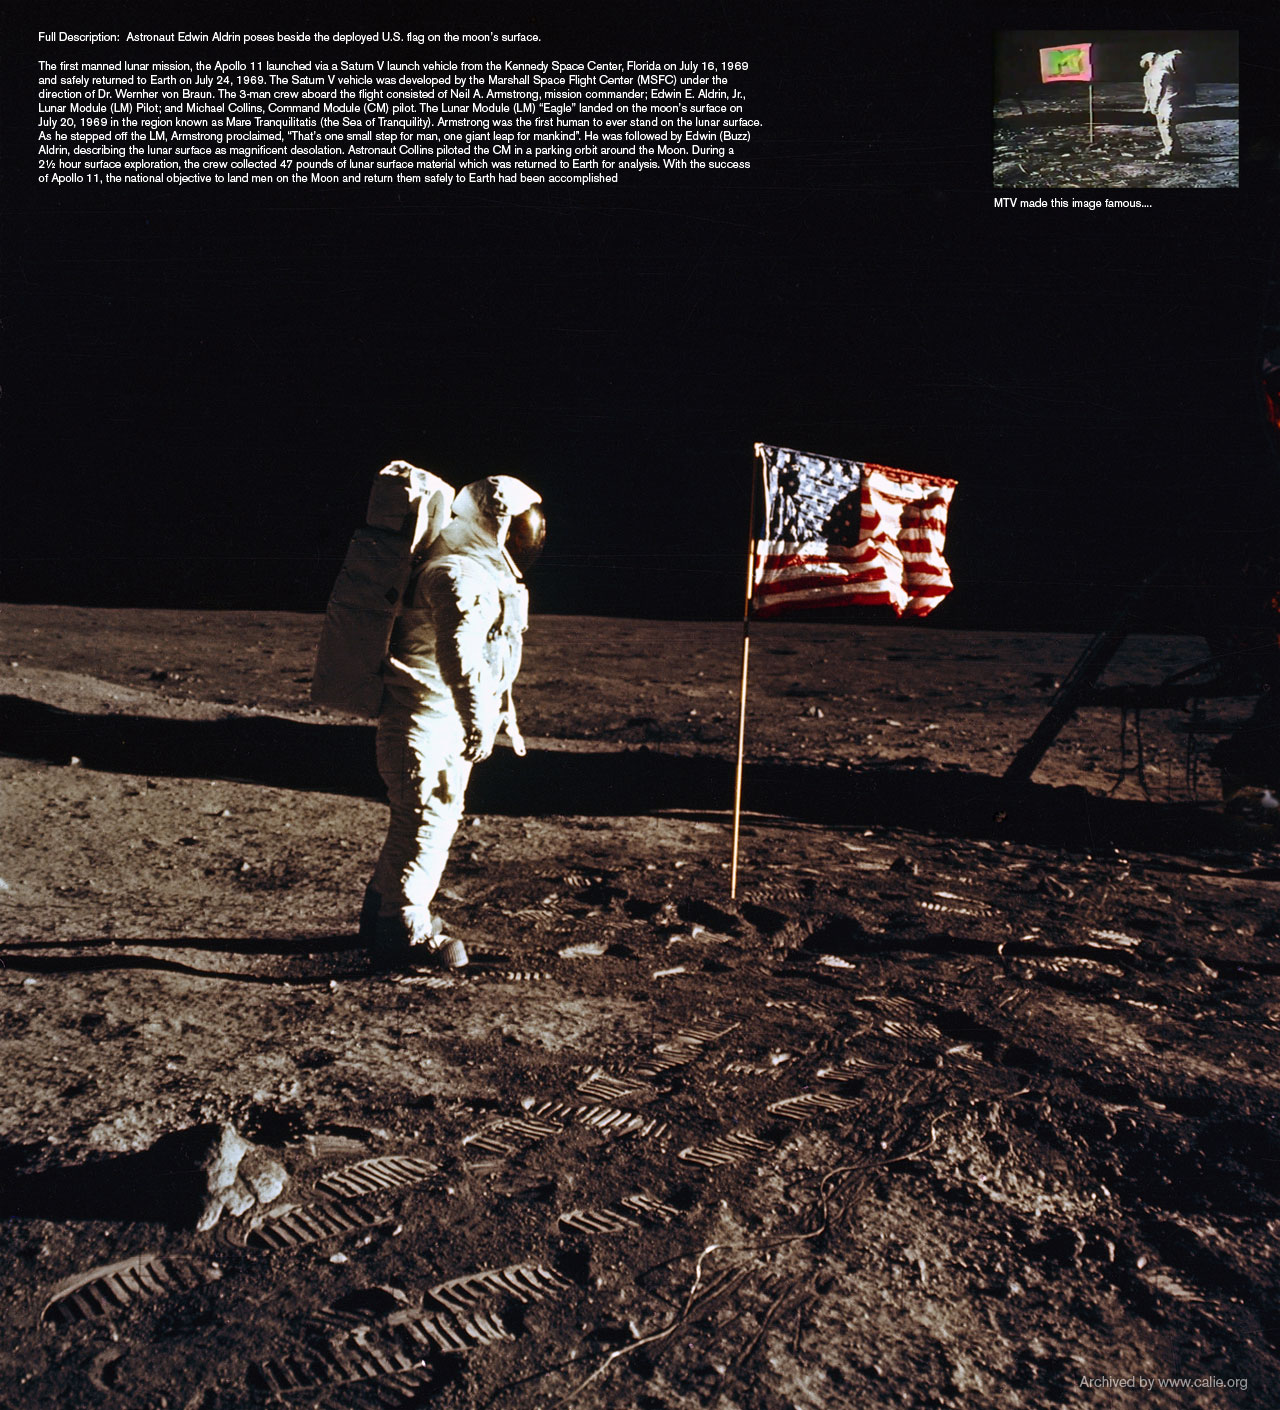 FIRST MAN ON MOON WITH AMERICAN FLAG Pictures Loading...